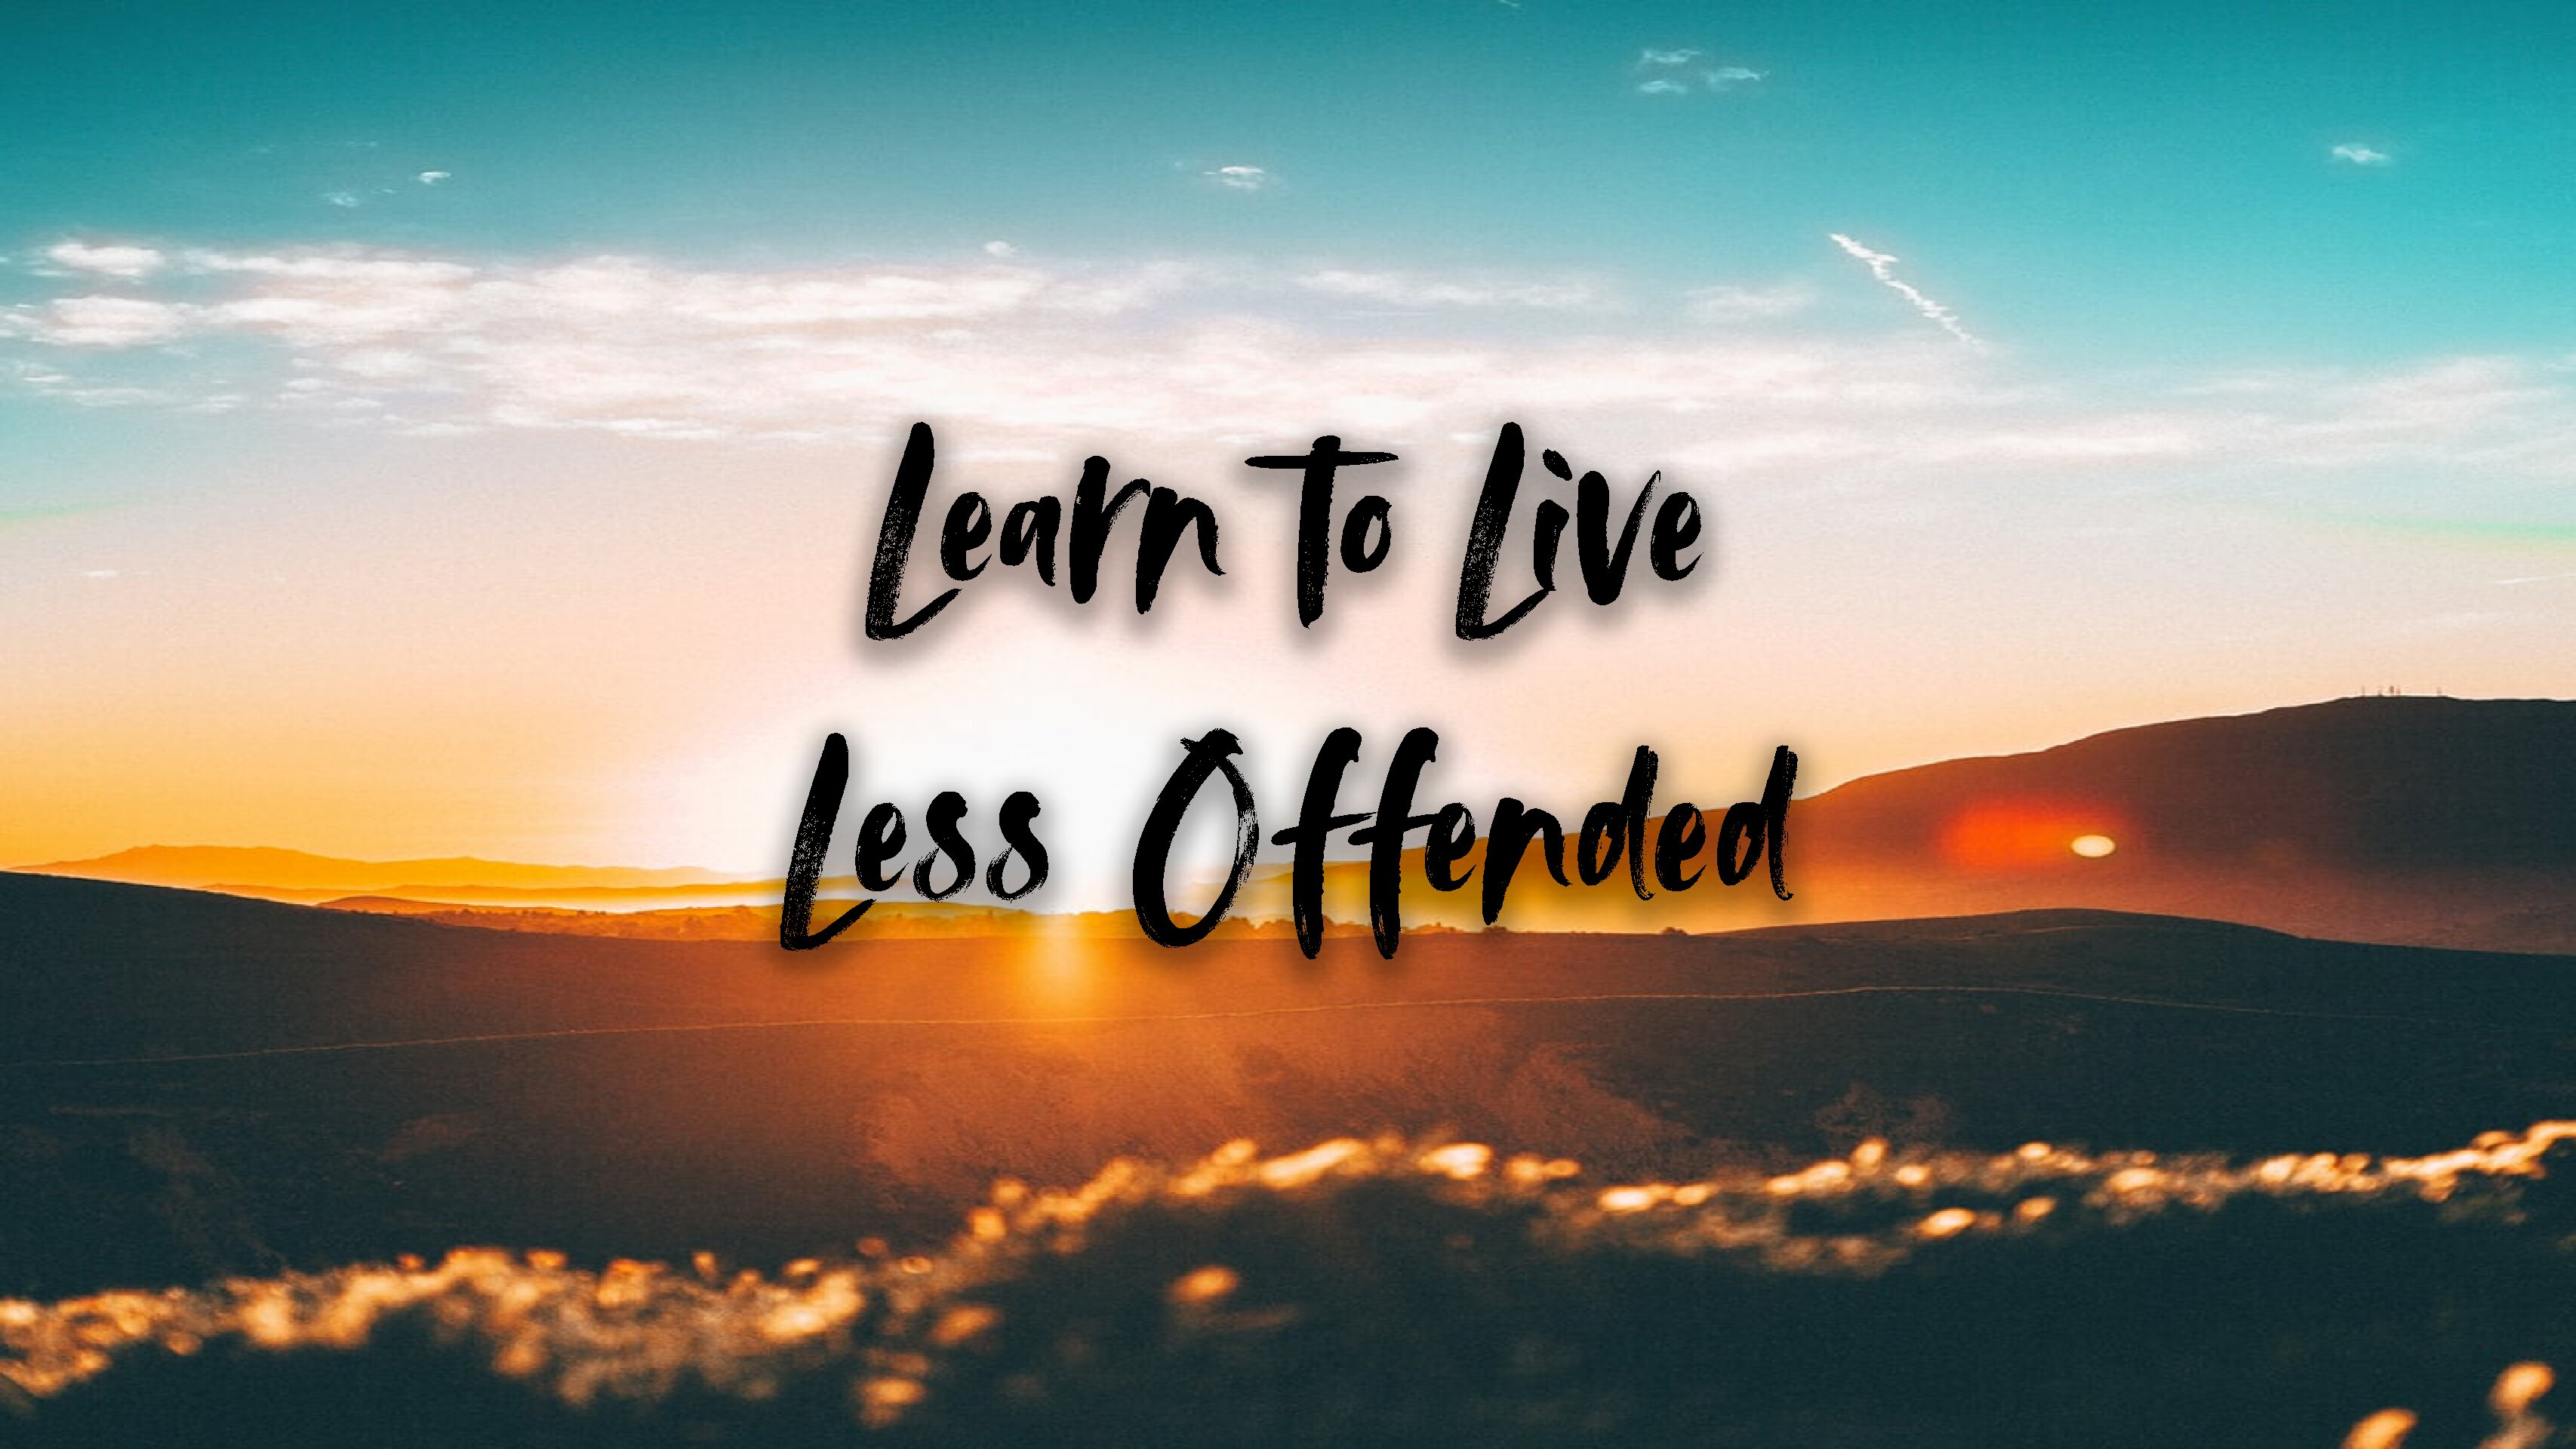 Learn to Live Less Offended